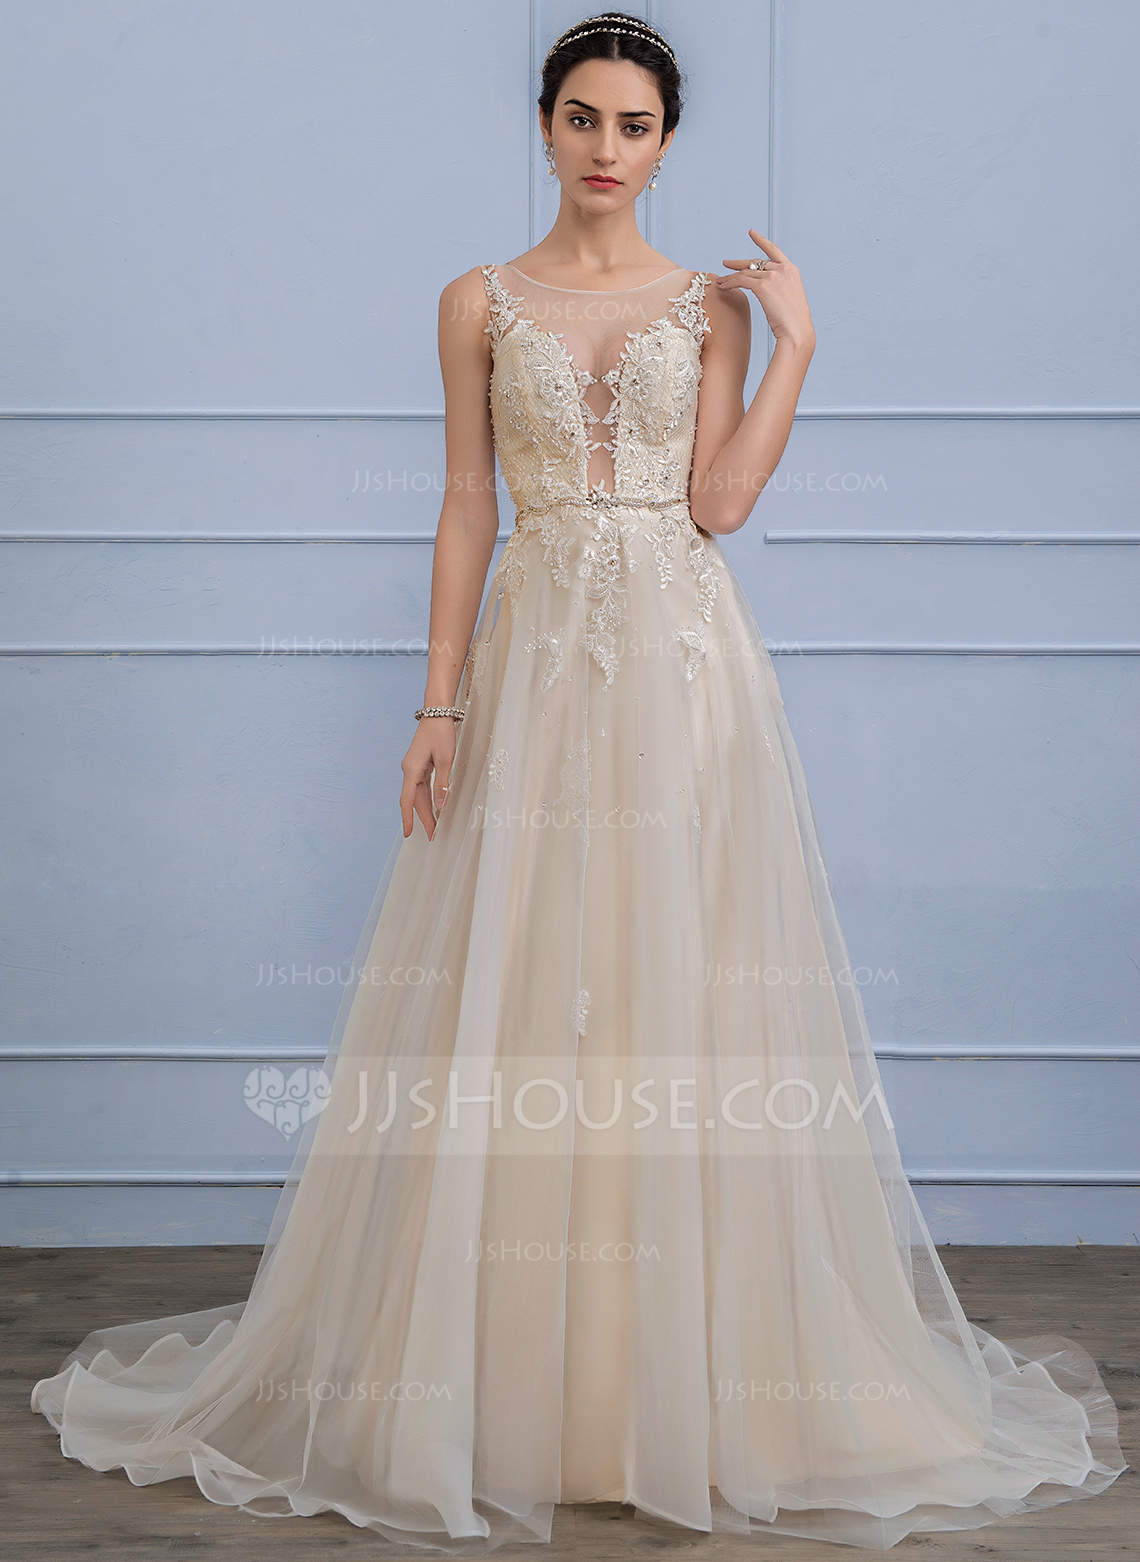 Cheap Wedding Dresses c2 discounted wedding dresses A Line Princess Scoop Neck Sweep Train Tulle Lace Wedding Dress With Beading Sequins